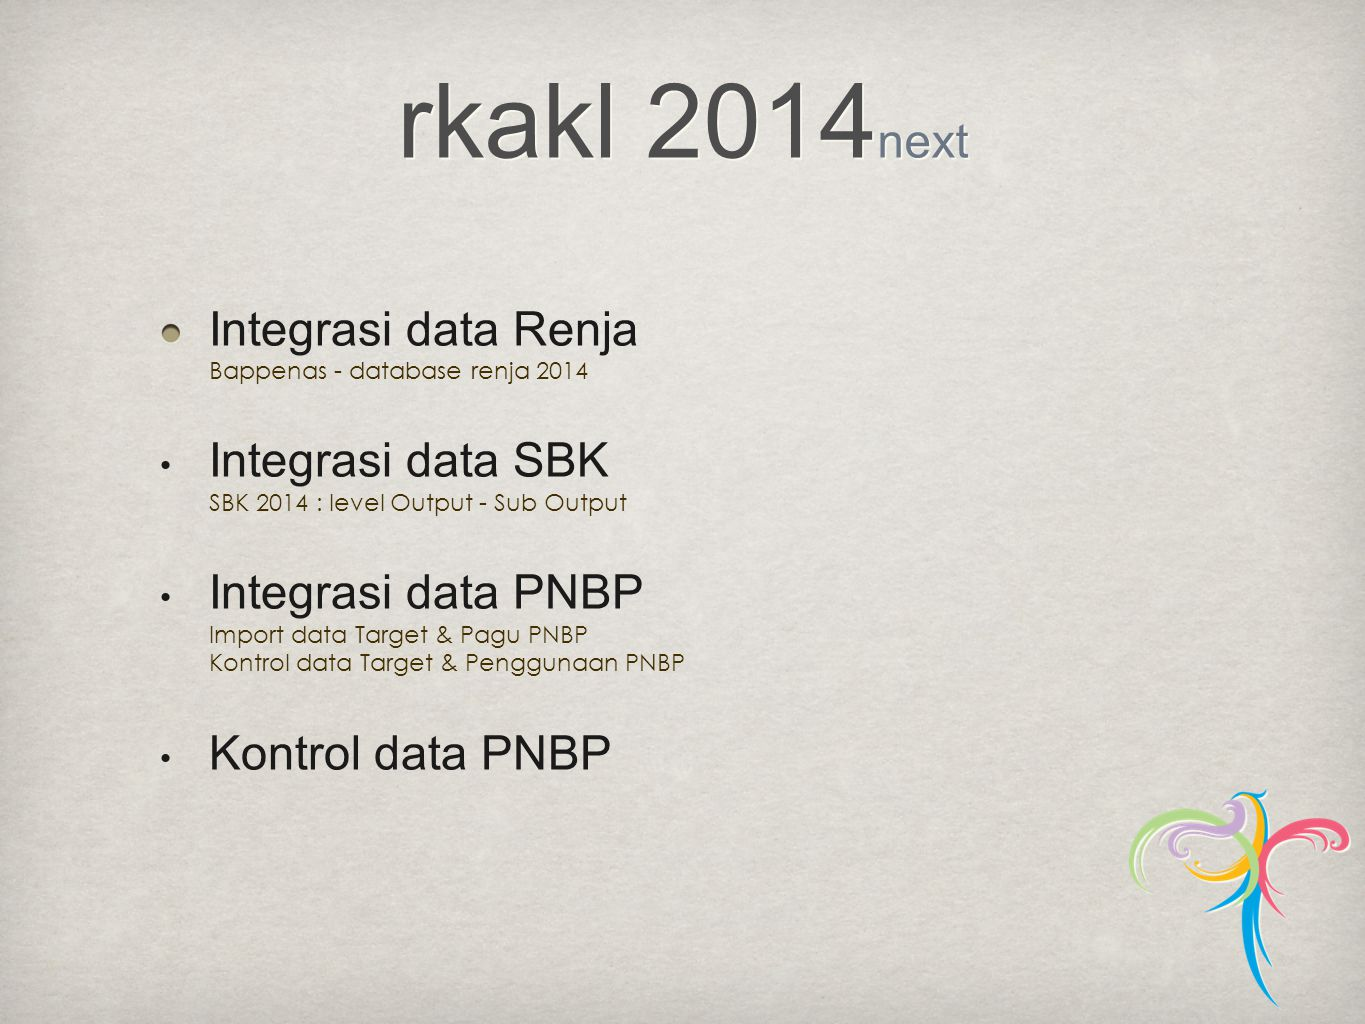 Integrasi data Renja Bappenas - database renja 2014 • Integrasi data SBK SBK 2014 : level Output - Sub Output • Integrasi data PNBP Import data Target